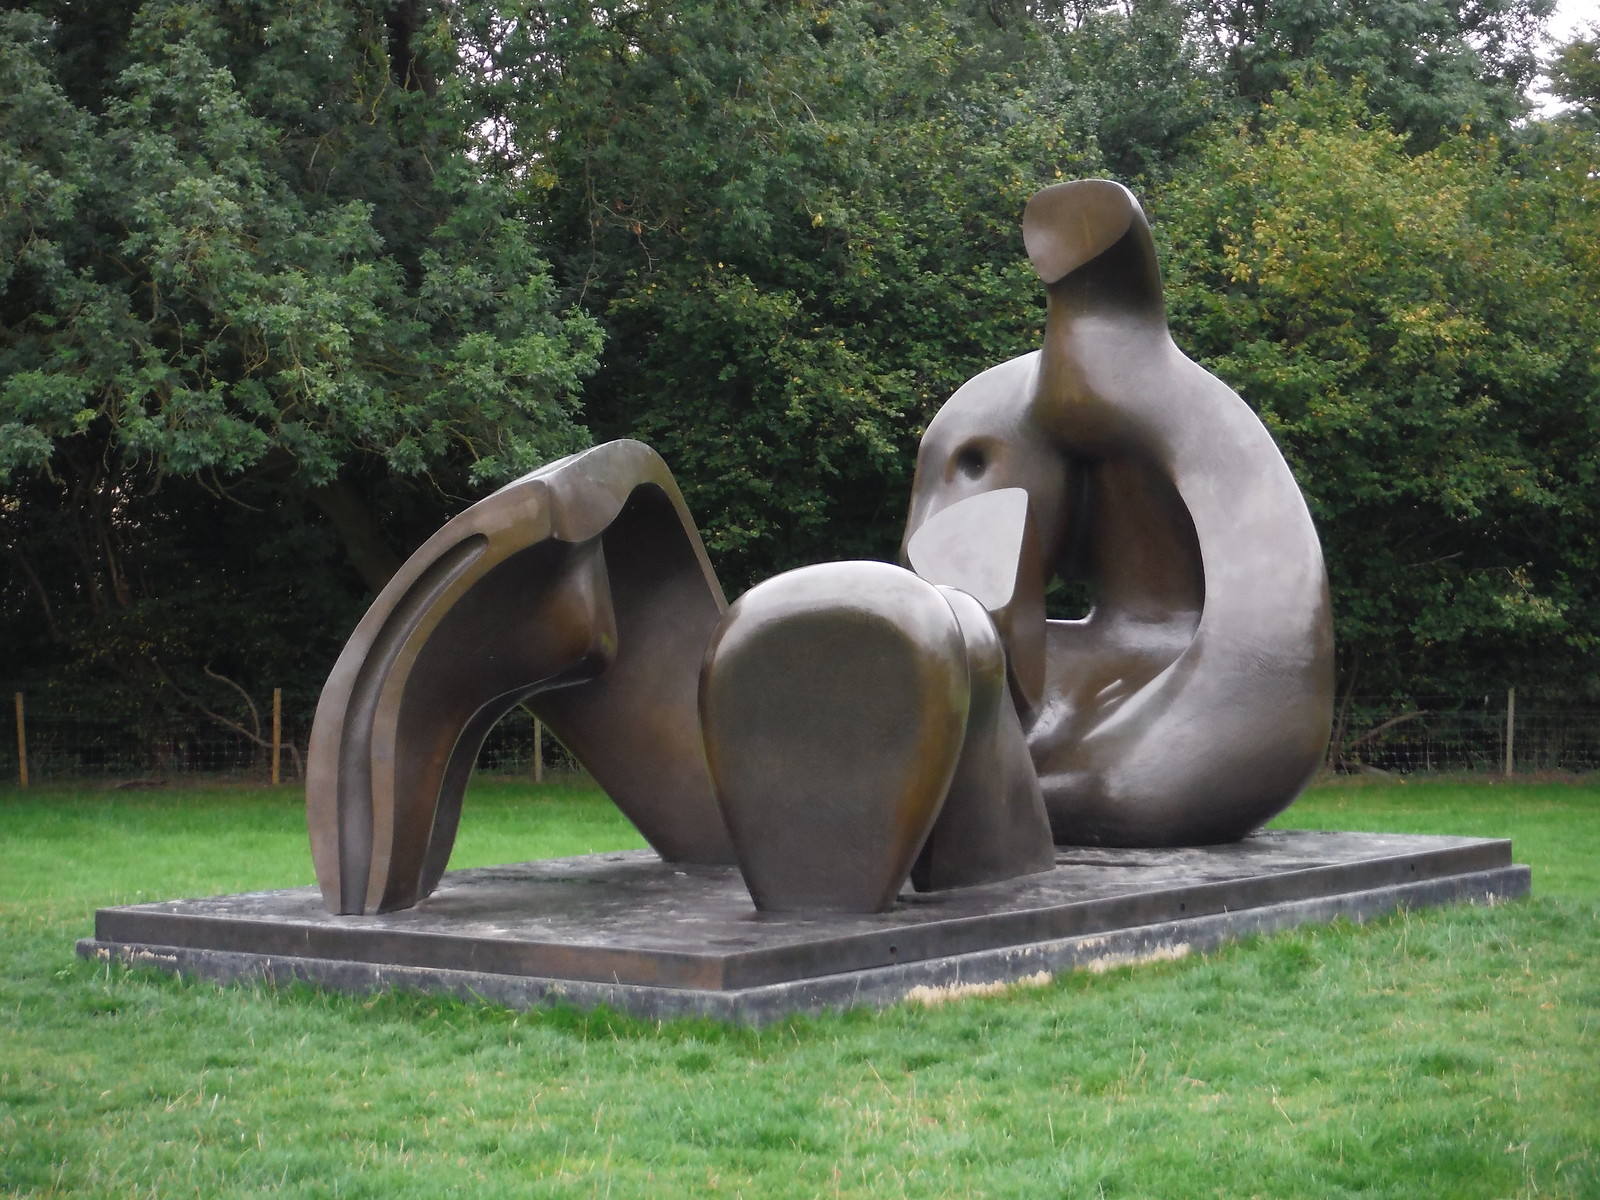 Three Piece Reclining Figure: Draped (1975) (II) SWC Walk 164 Roydon to Sawbridgeworth via Henry Moore Foundation